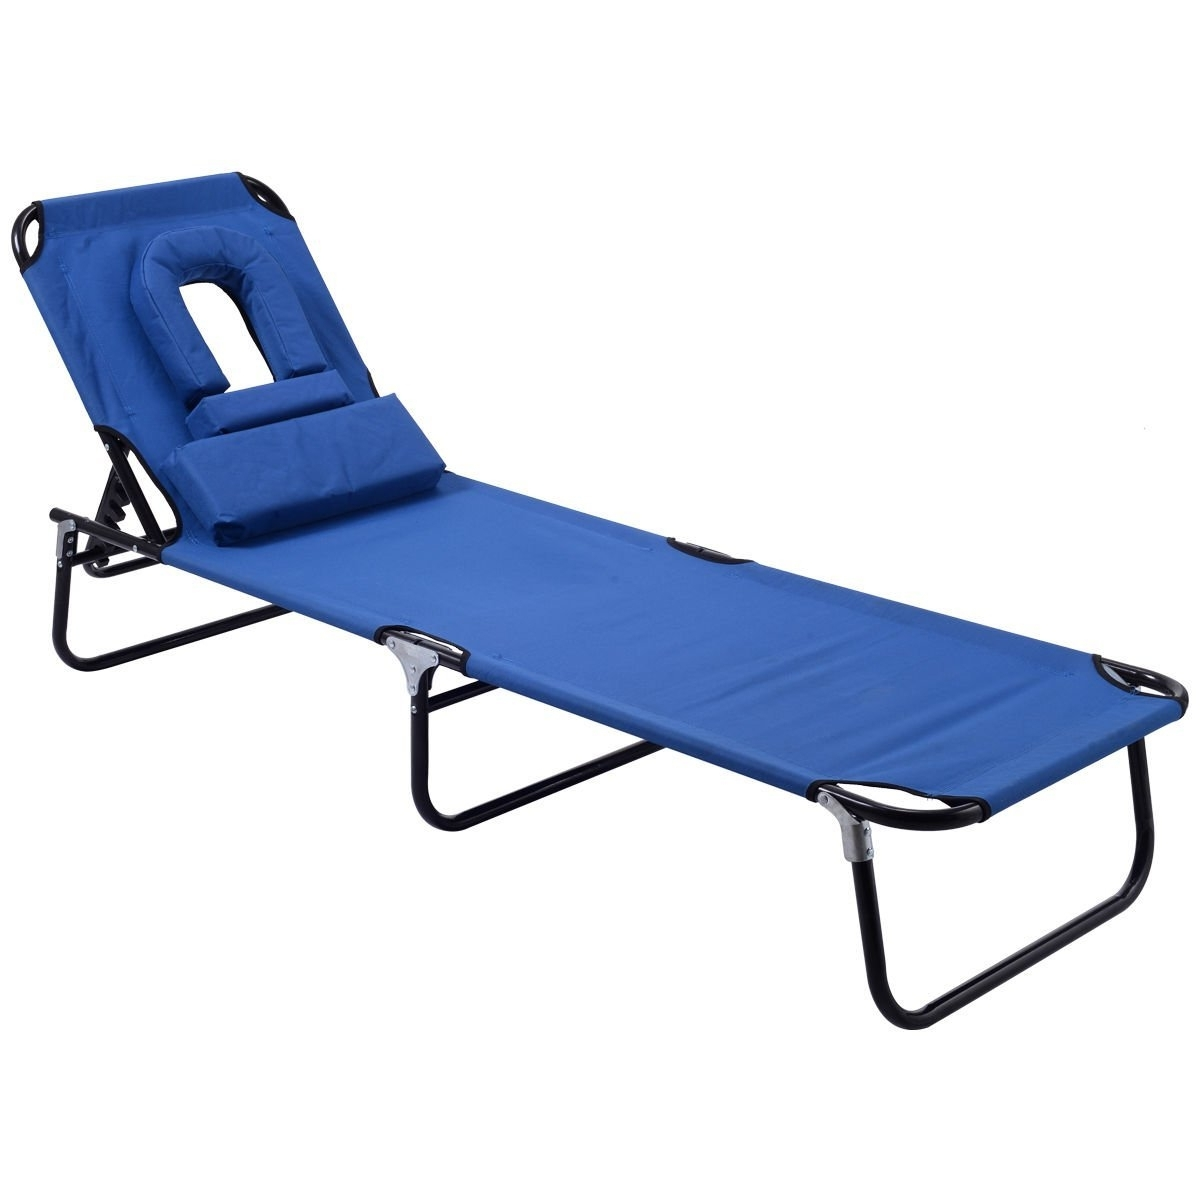 Trendy Chaise Lounge Beach Chairs In Amazon: Goplus Folding Chaise Lounge Chair Bed Outdoor Patio (View 5 of 15)